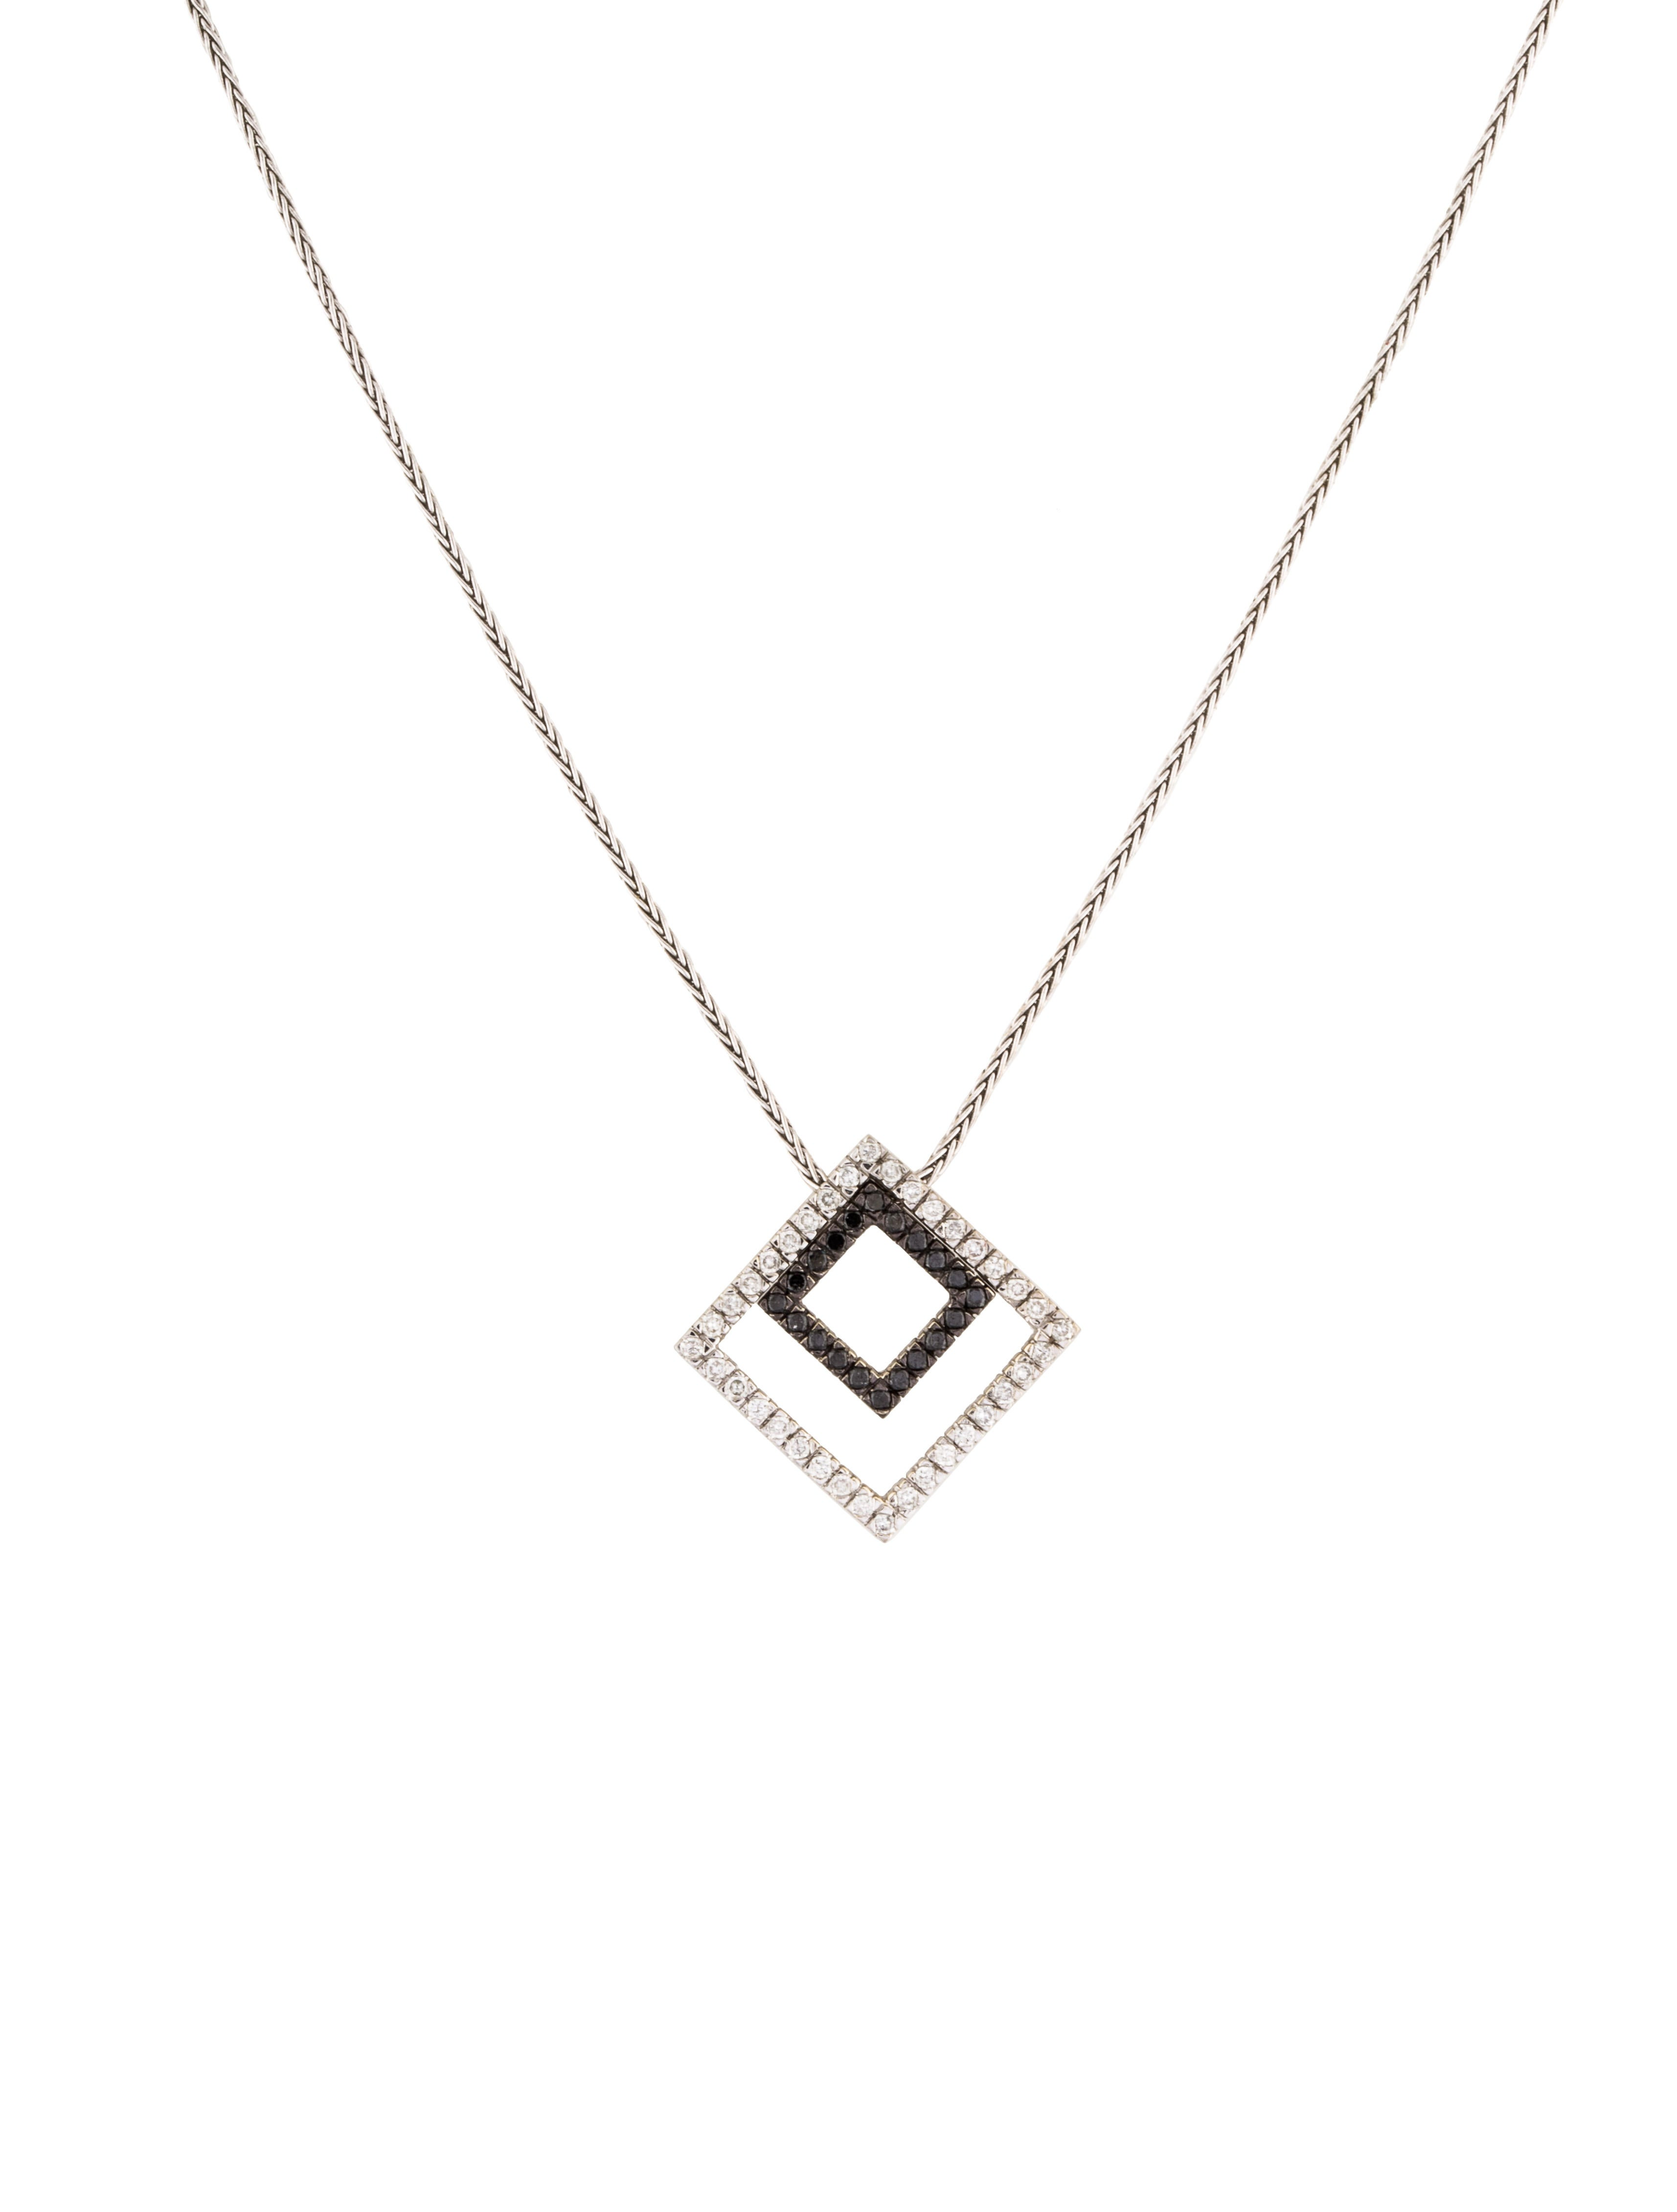 studded product prices on in necklace gold dzinetrendz pendant thumb com plated swastik at cz chain diamond low india design look jewellery buy only winsant square